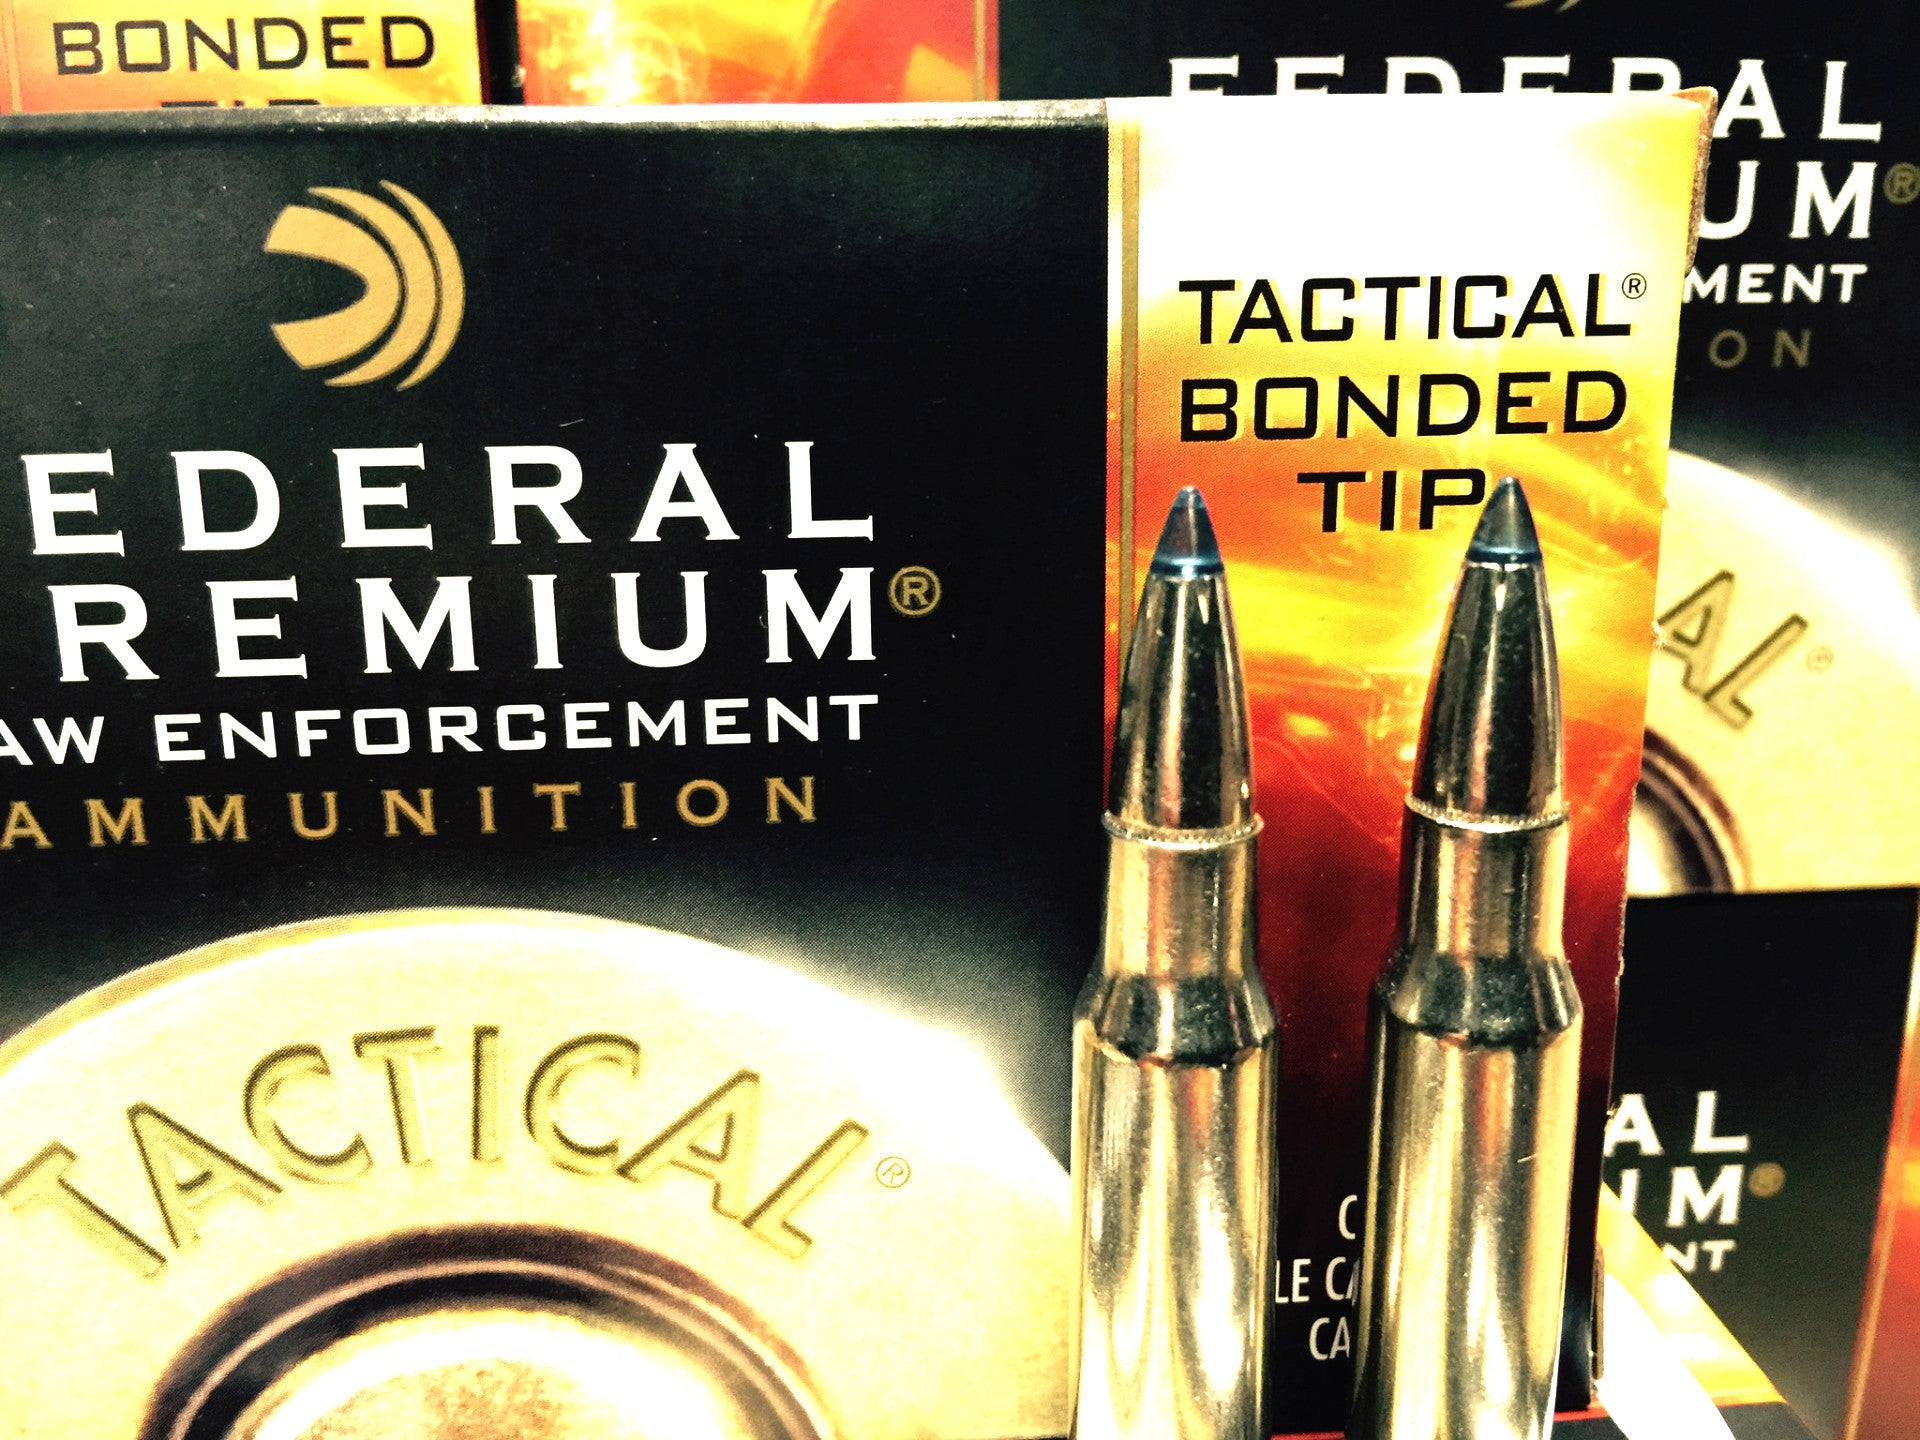 Ammunition: New, factory made, self-defense and range ammo  Tagged